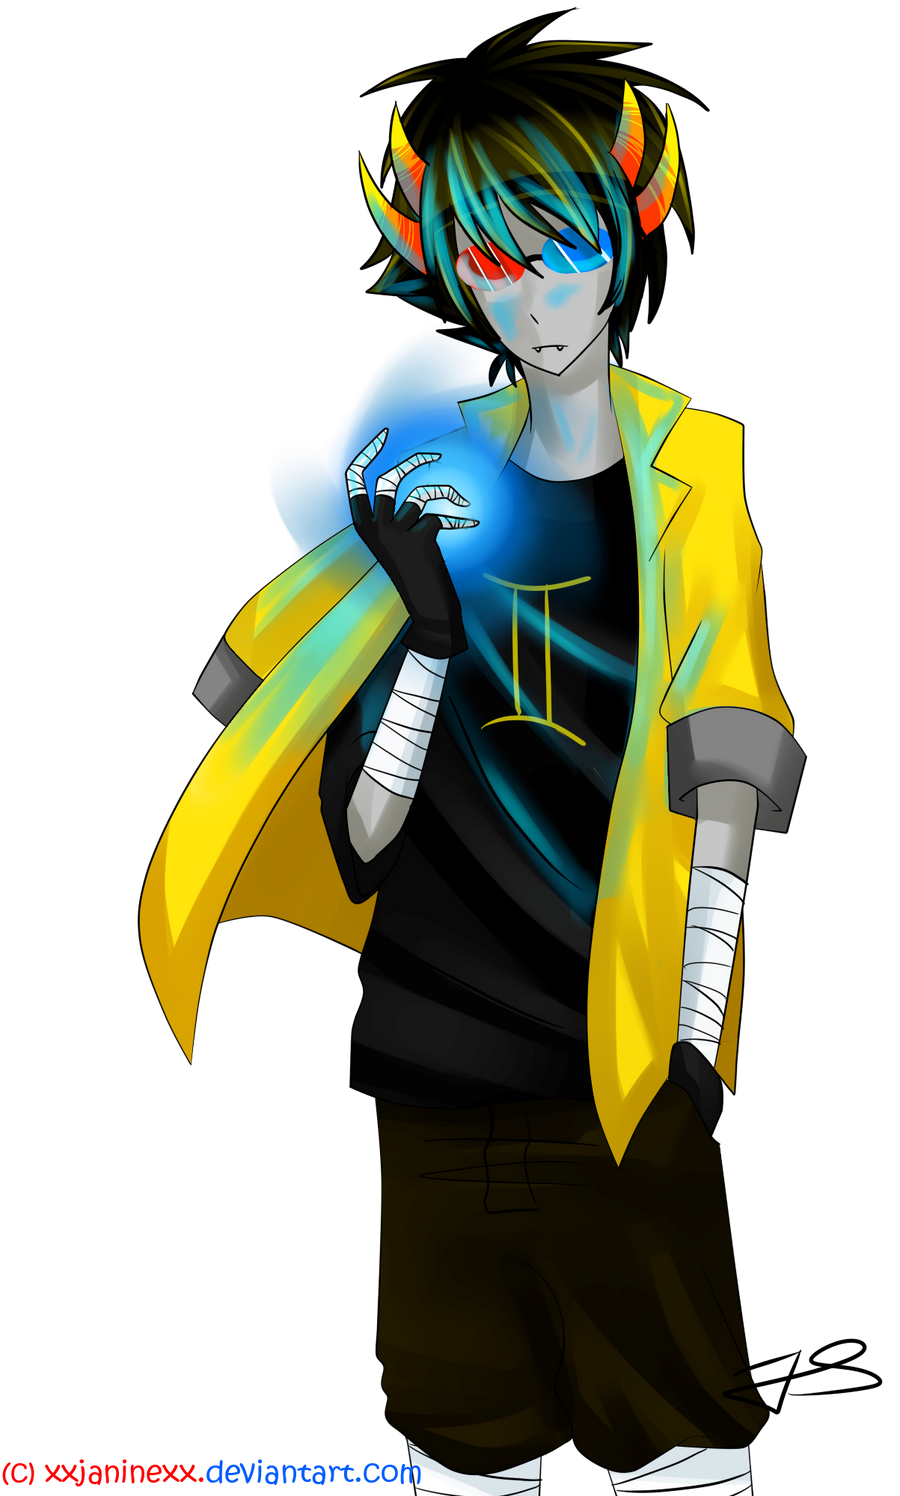 sollux captor by timelessknight on deviantart